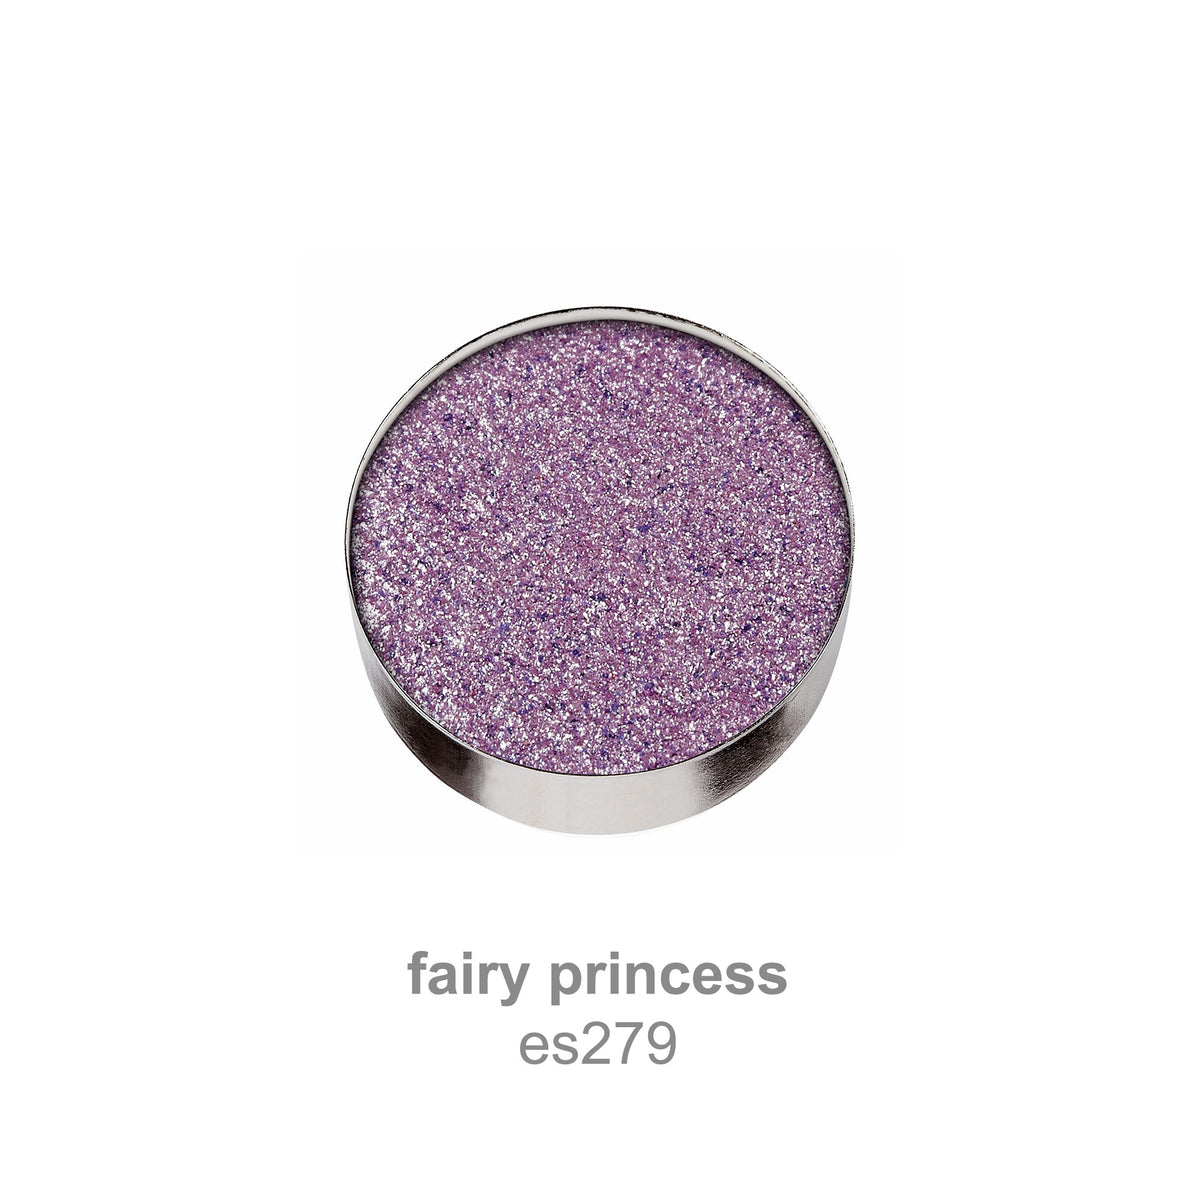 fairy princess (es279)